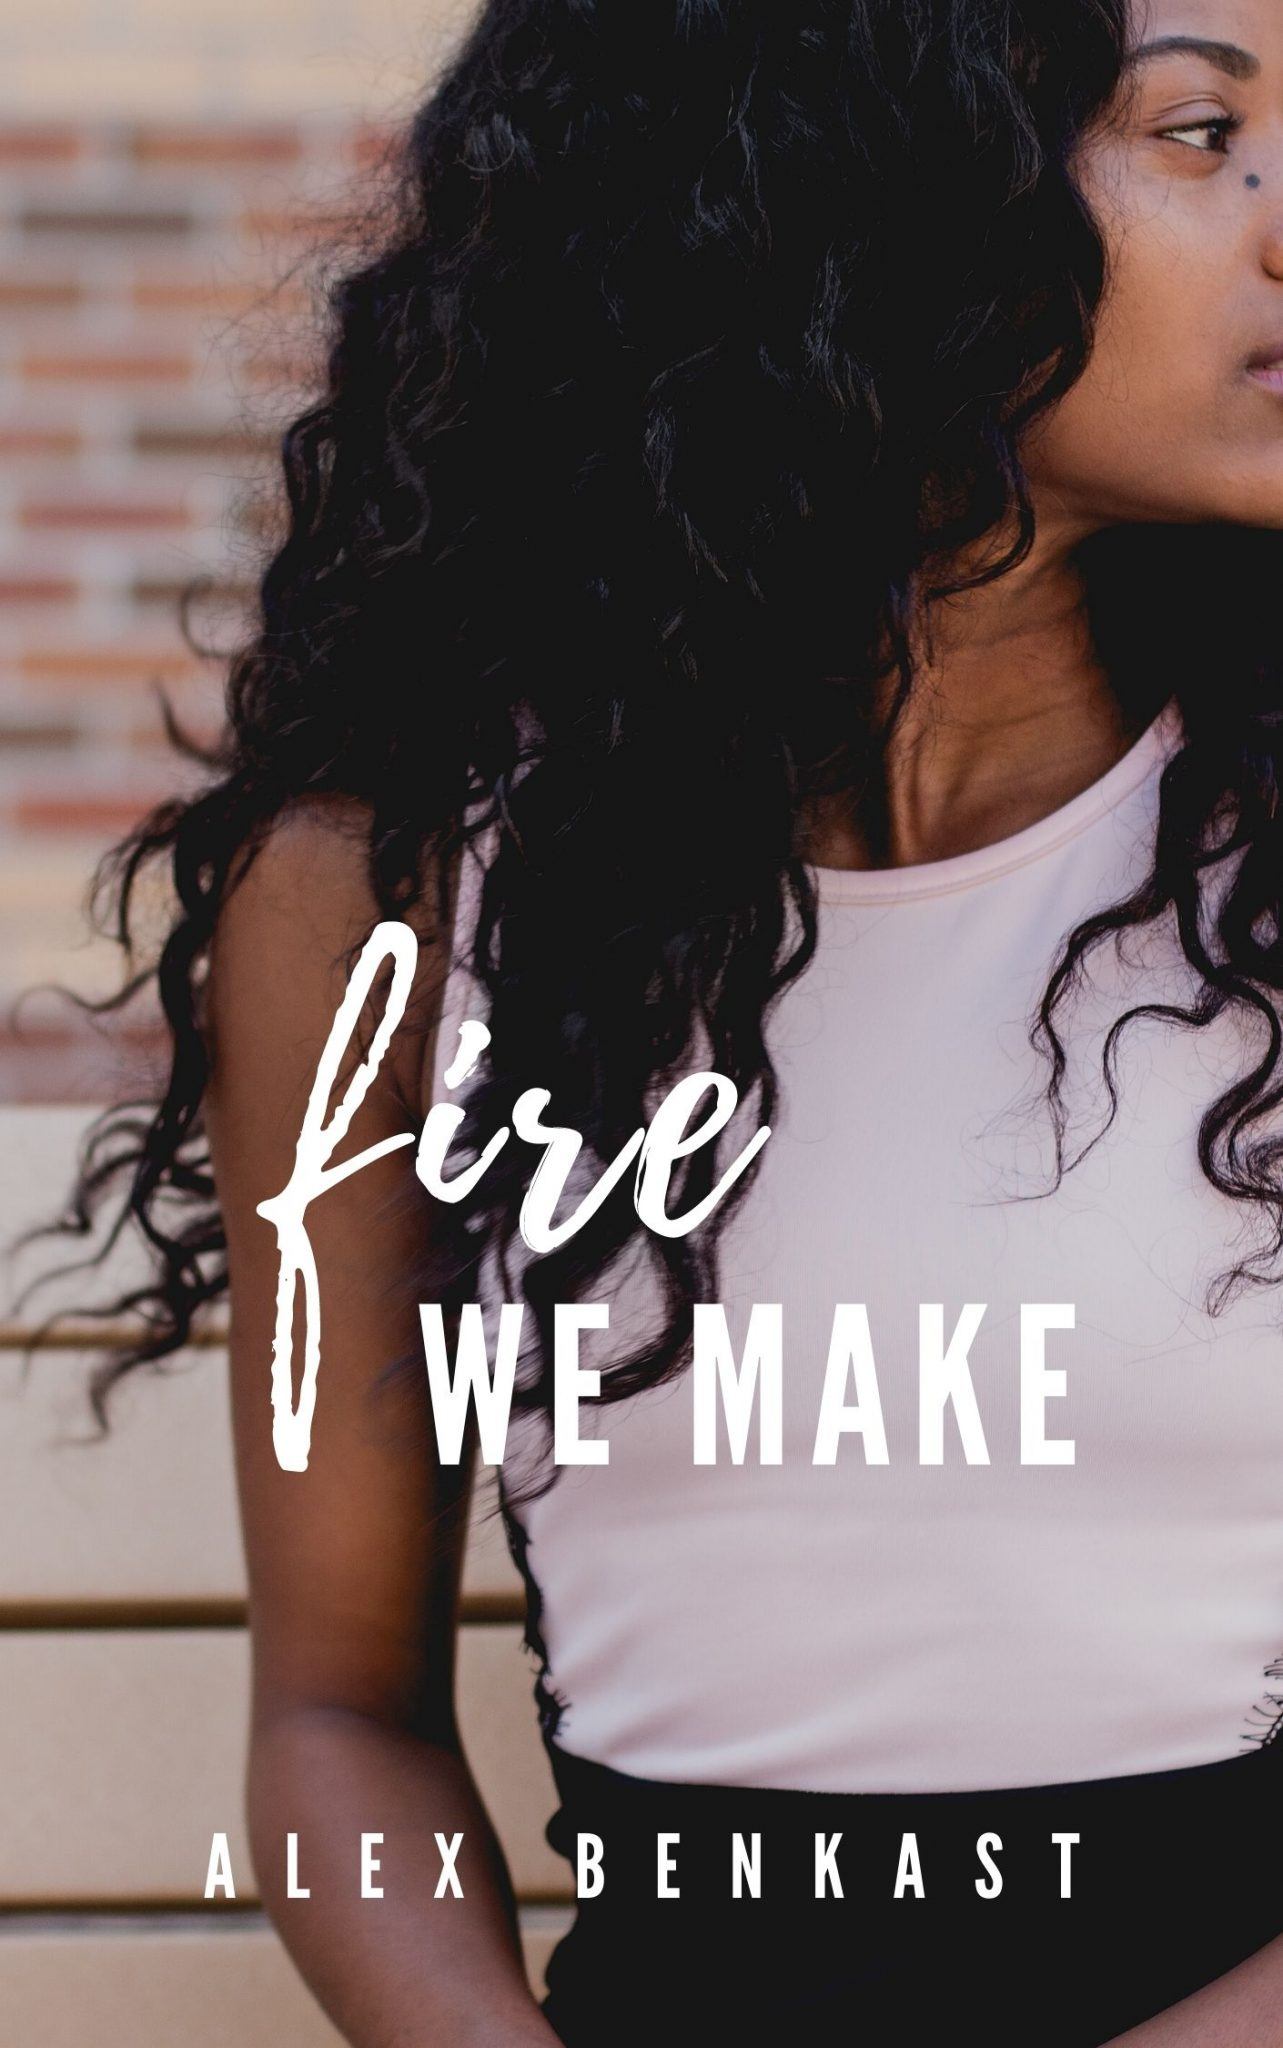 Book Cover of Fire We Make - Rebels Like Us Book 3 by Alex Benkast